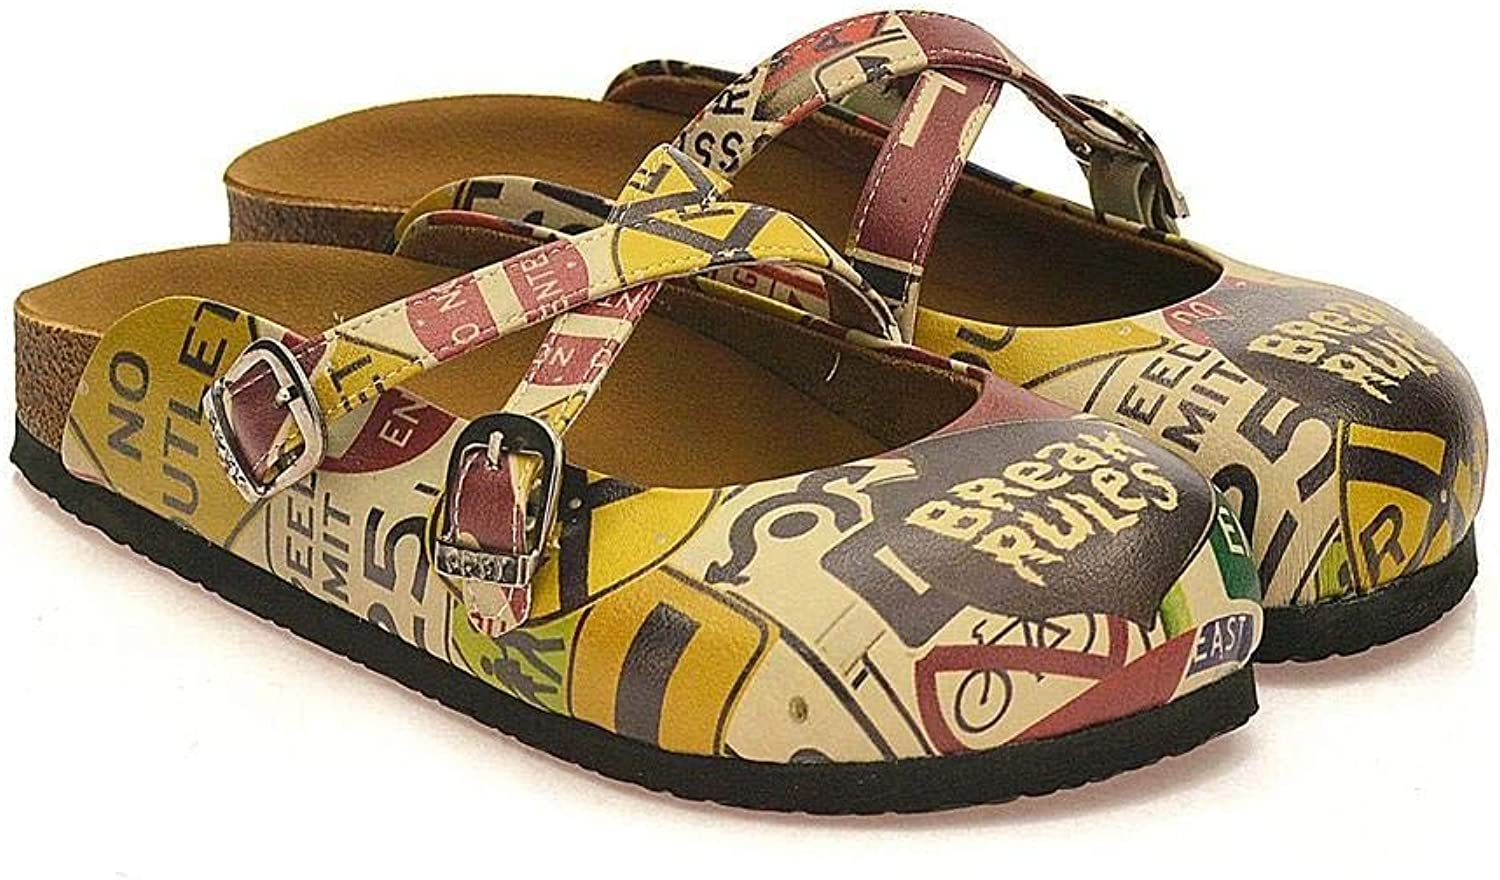 Goby Women's shoes ''Rebellious Girl Doodle Clog'' Sandals 'BKS108'